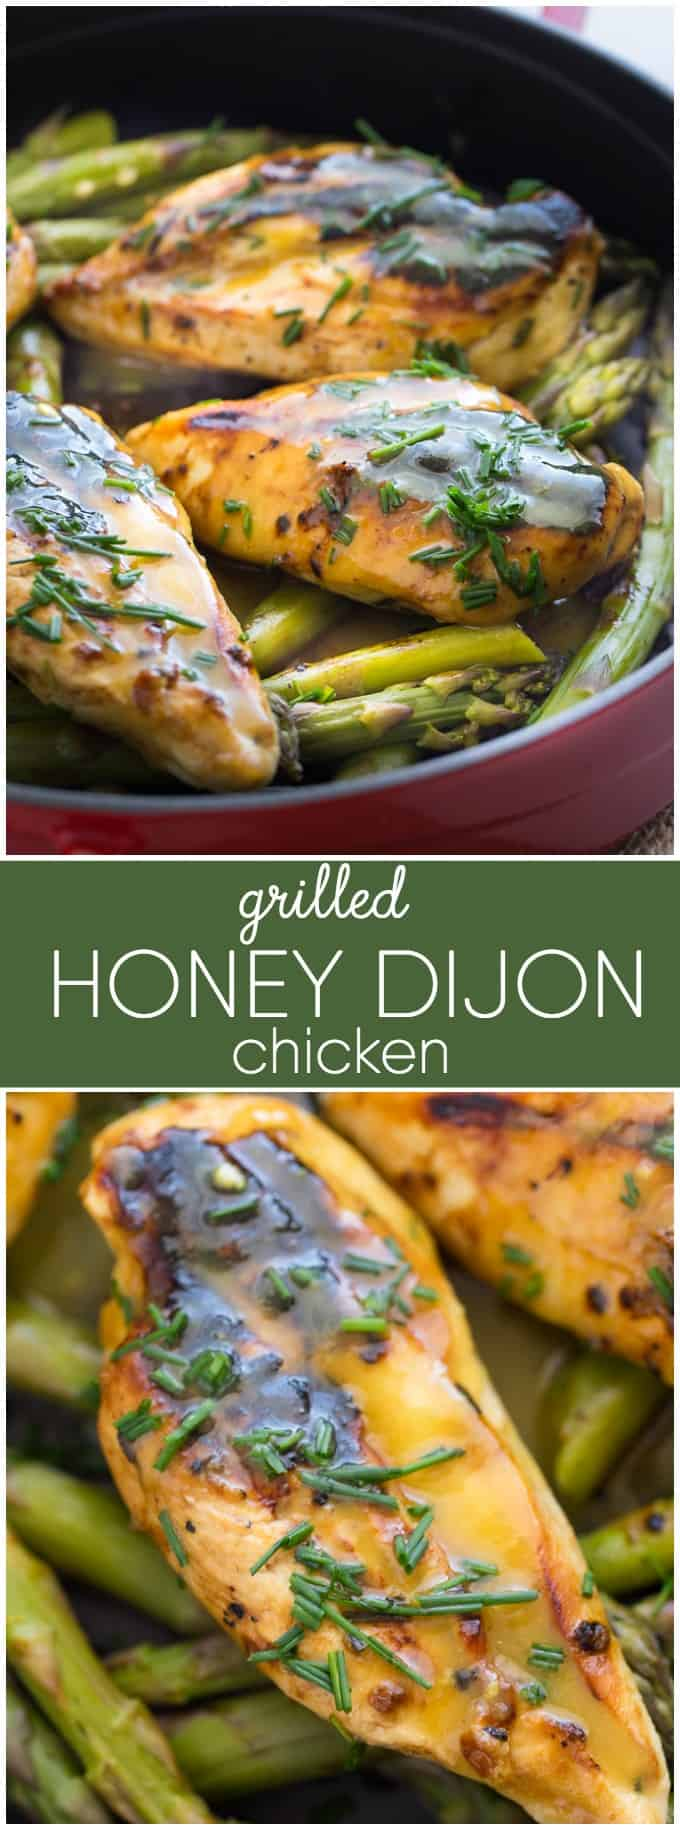 Grilled Honey Dijon Chicken - Moist, tender, flavourful and EASY! Your family will be asking you to make this recipe again and again.